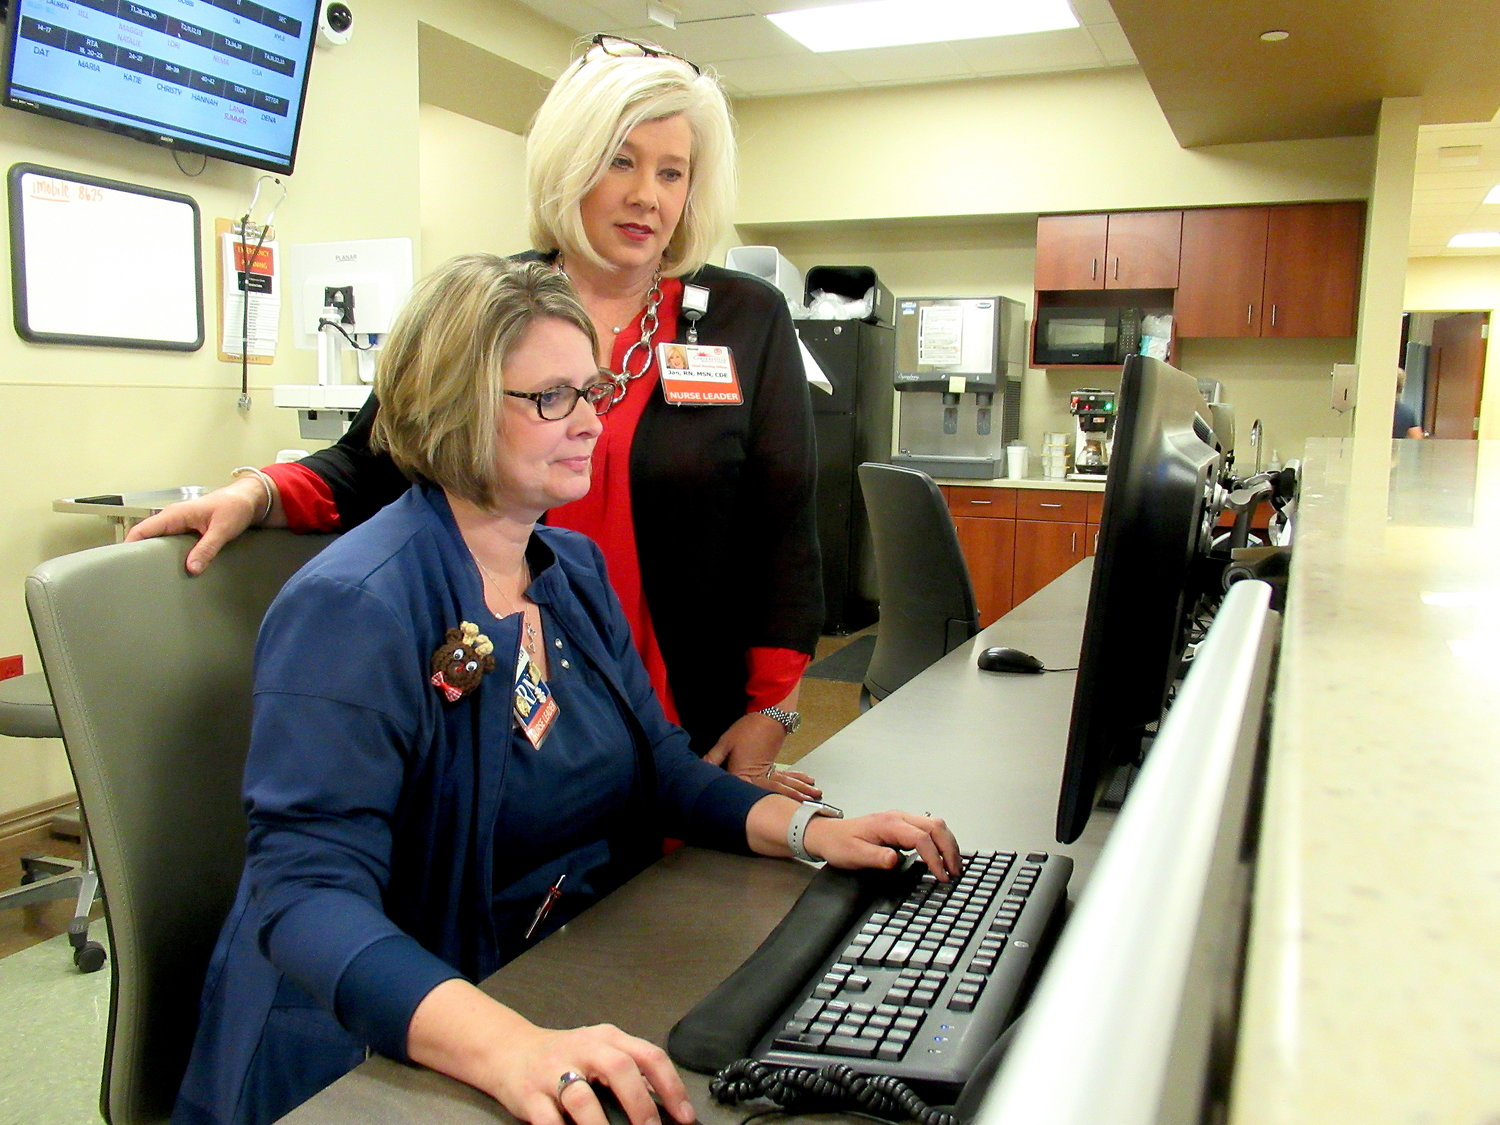 From left, Cartersville Medical Center's Emergency Department Director Heather Clement and Chief Nursing Officer Jan Tidwell.